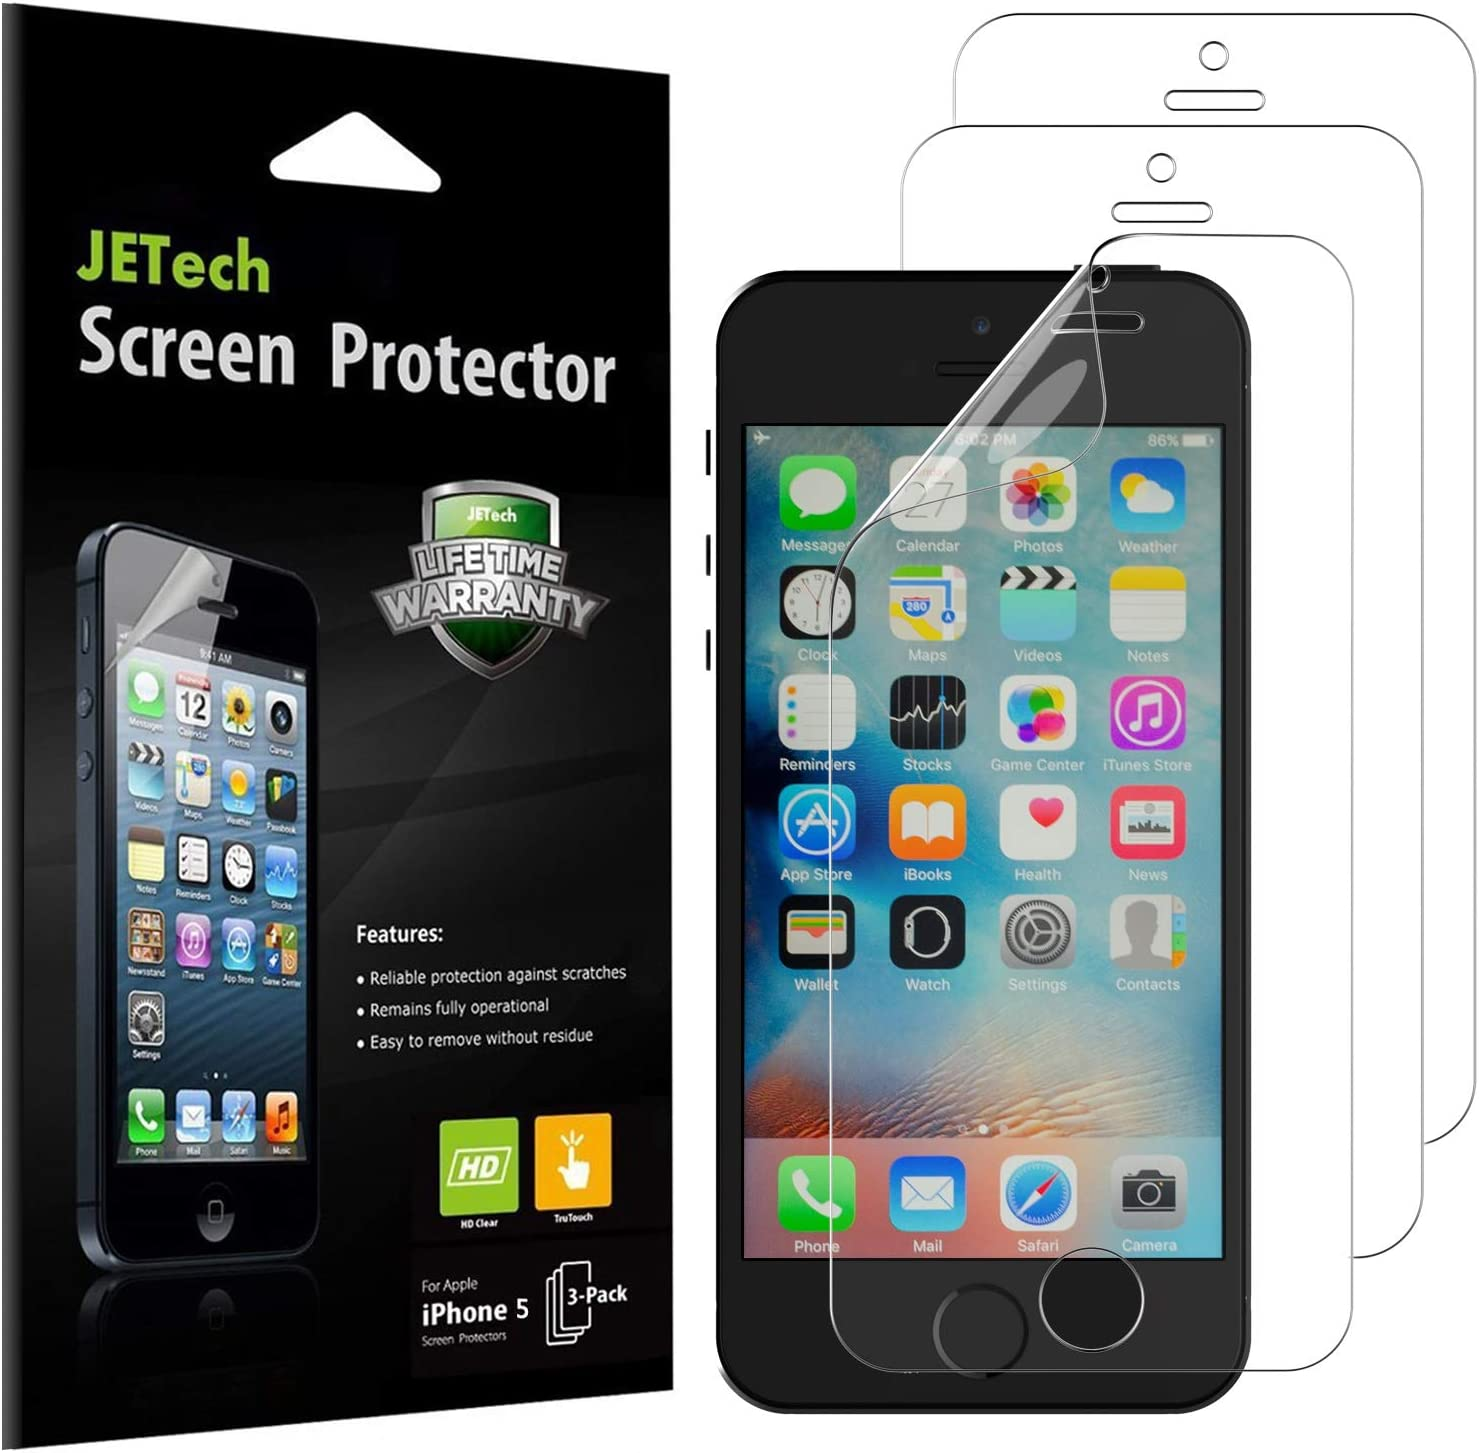 JETech Screen Protector for iPhone SE 5s 5c 5, PET, 3-Pack